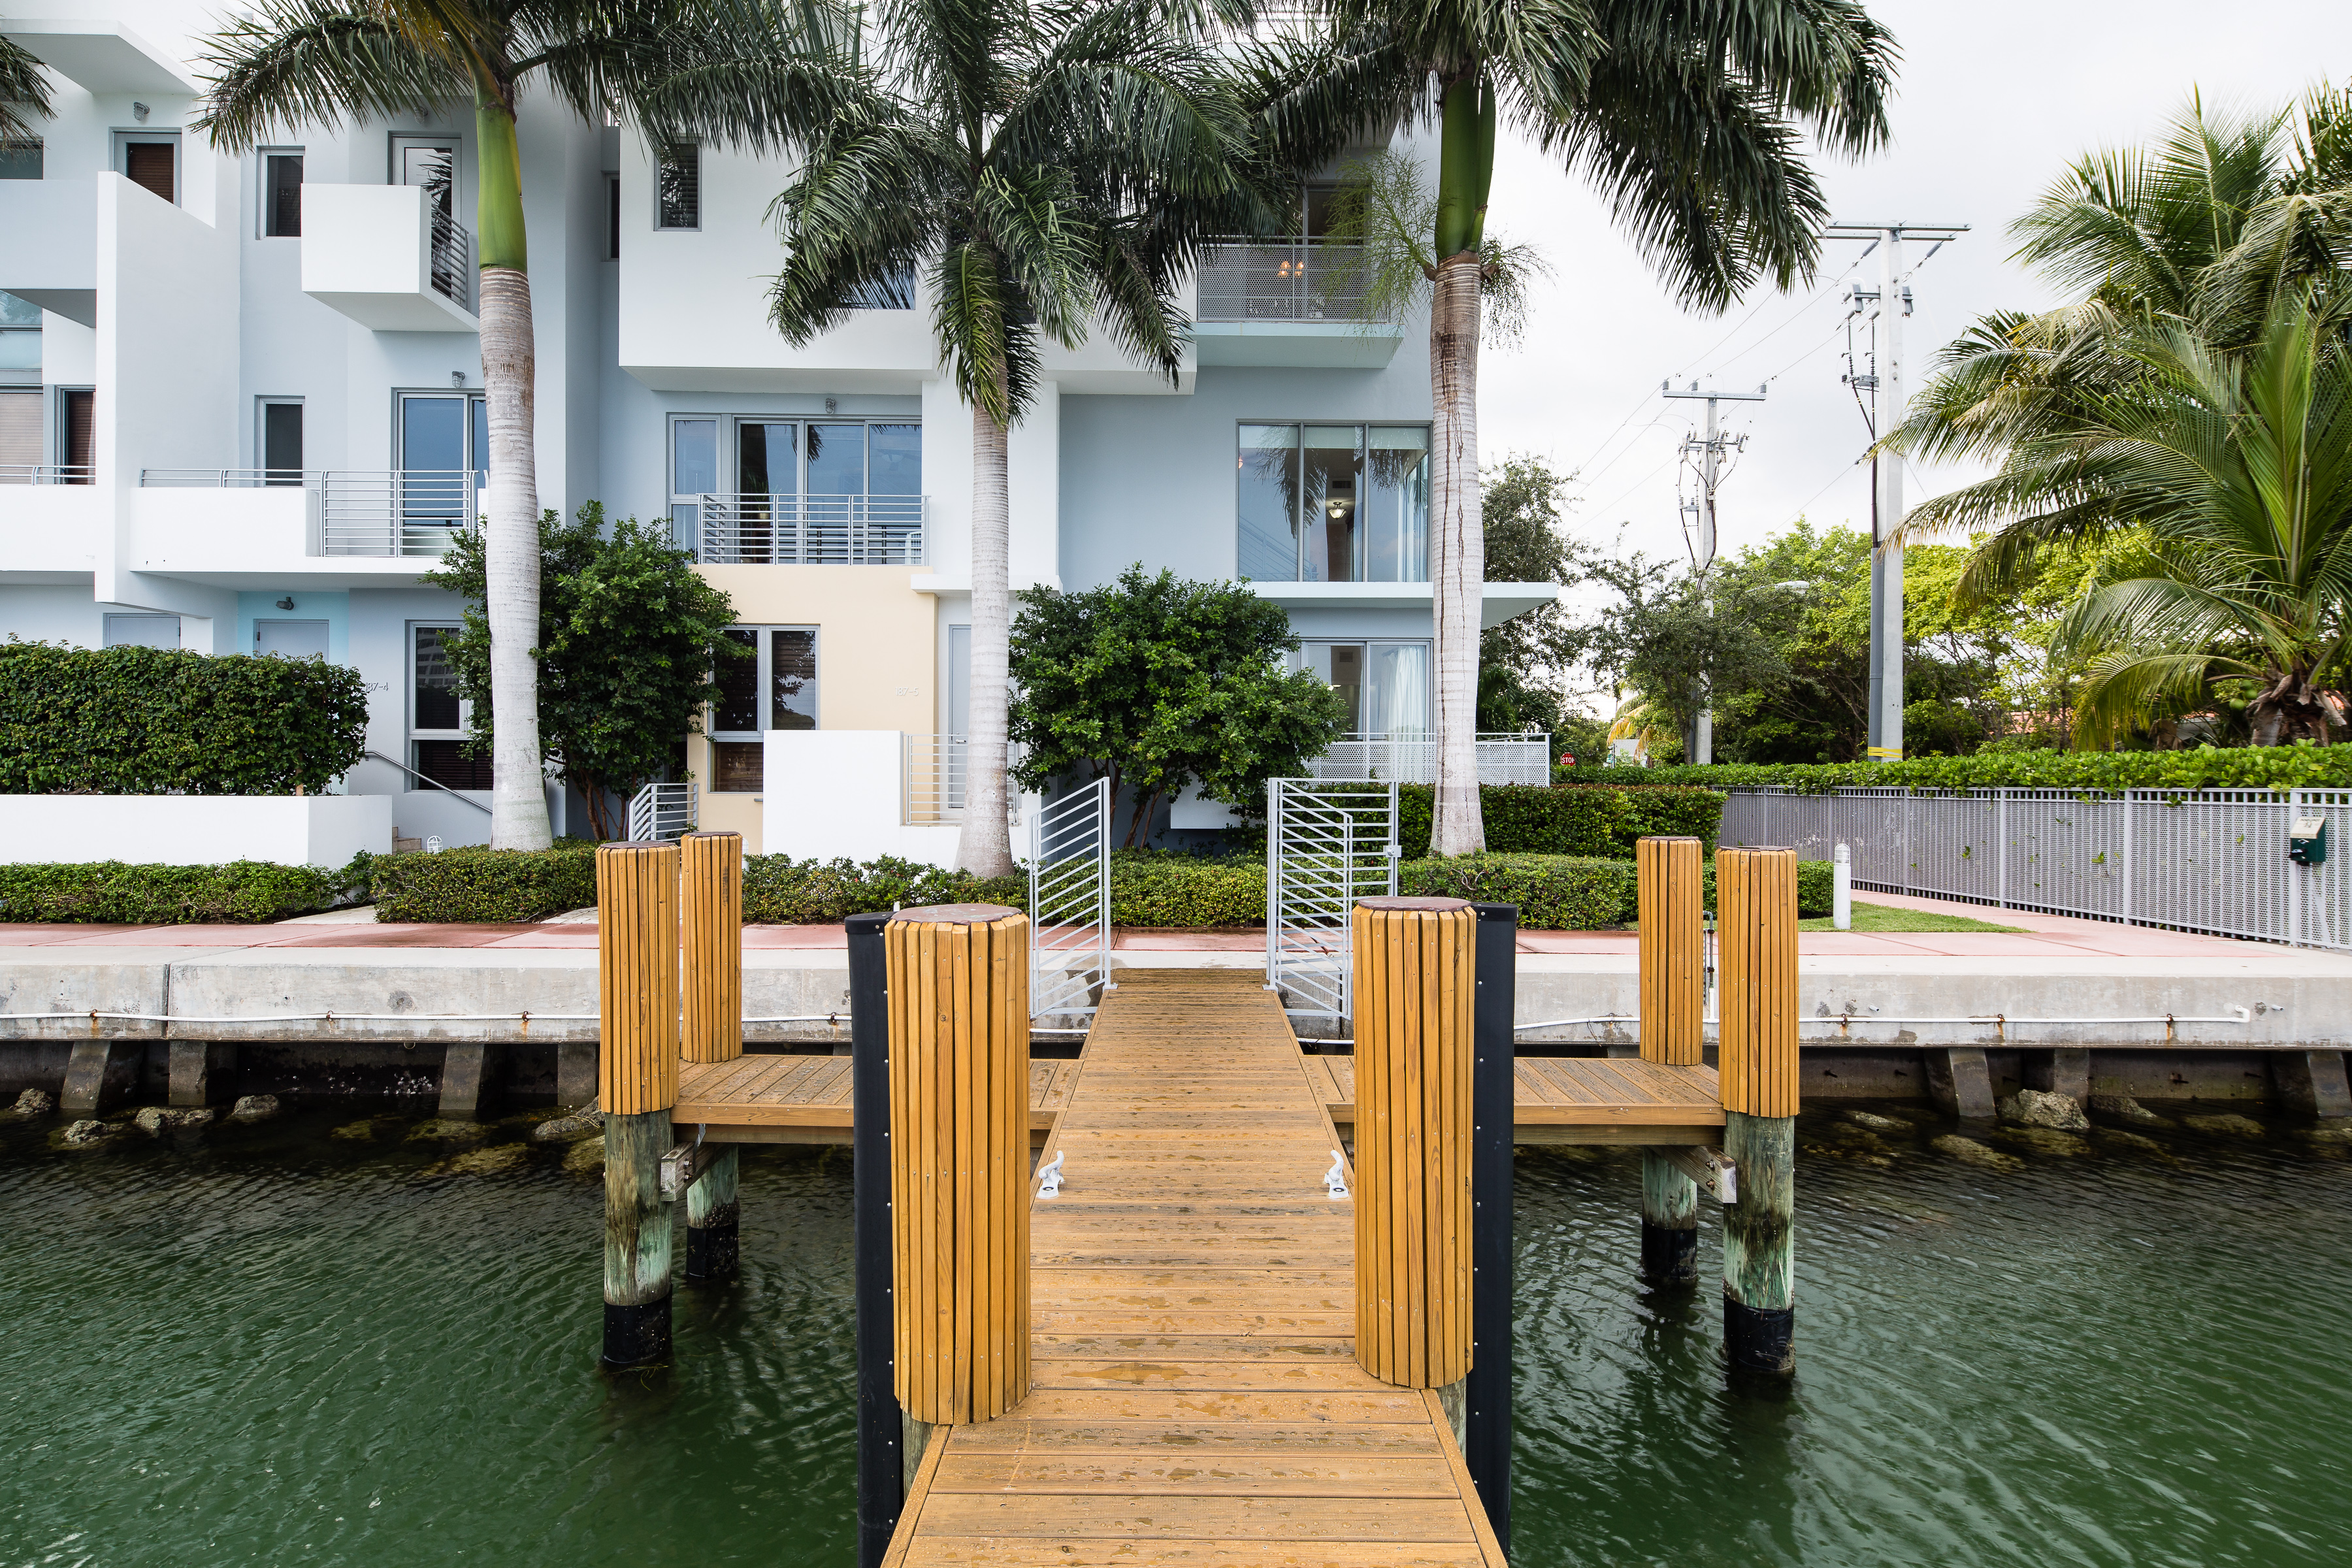 Townhouse for Sale at 187 N Shore Dr Unit 187-6 187 N Shore Dr 187-6 Miami Beach, Florida, 33141 United States